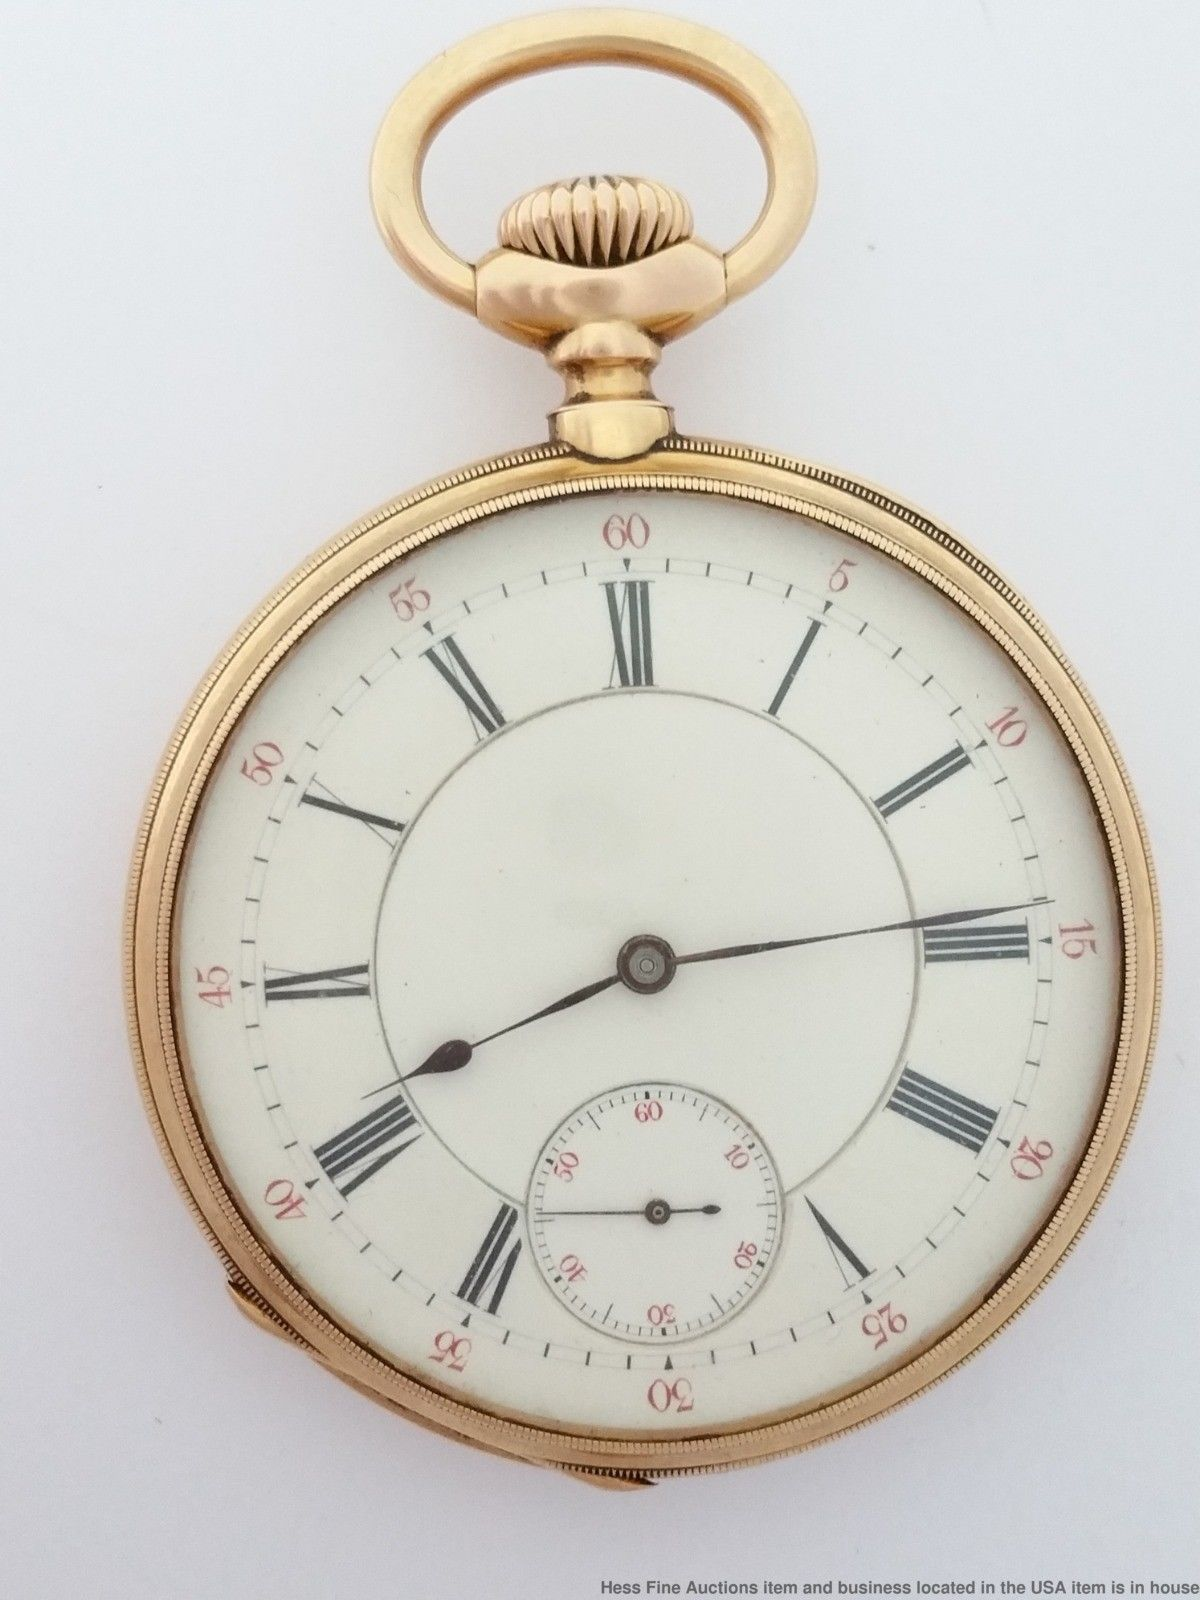 9018a27ca Rare Dial Very Early Patek Philippe Pocket Watch Matching Serial # 18K Gold    eBay